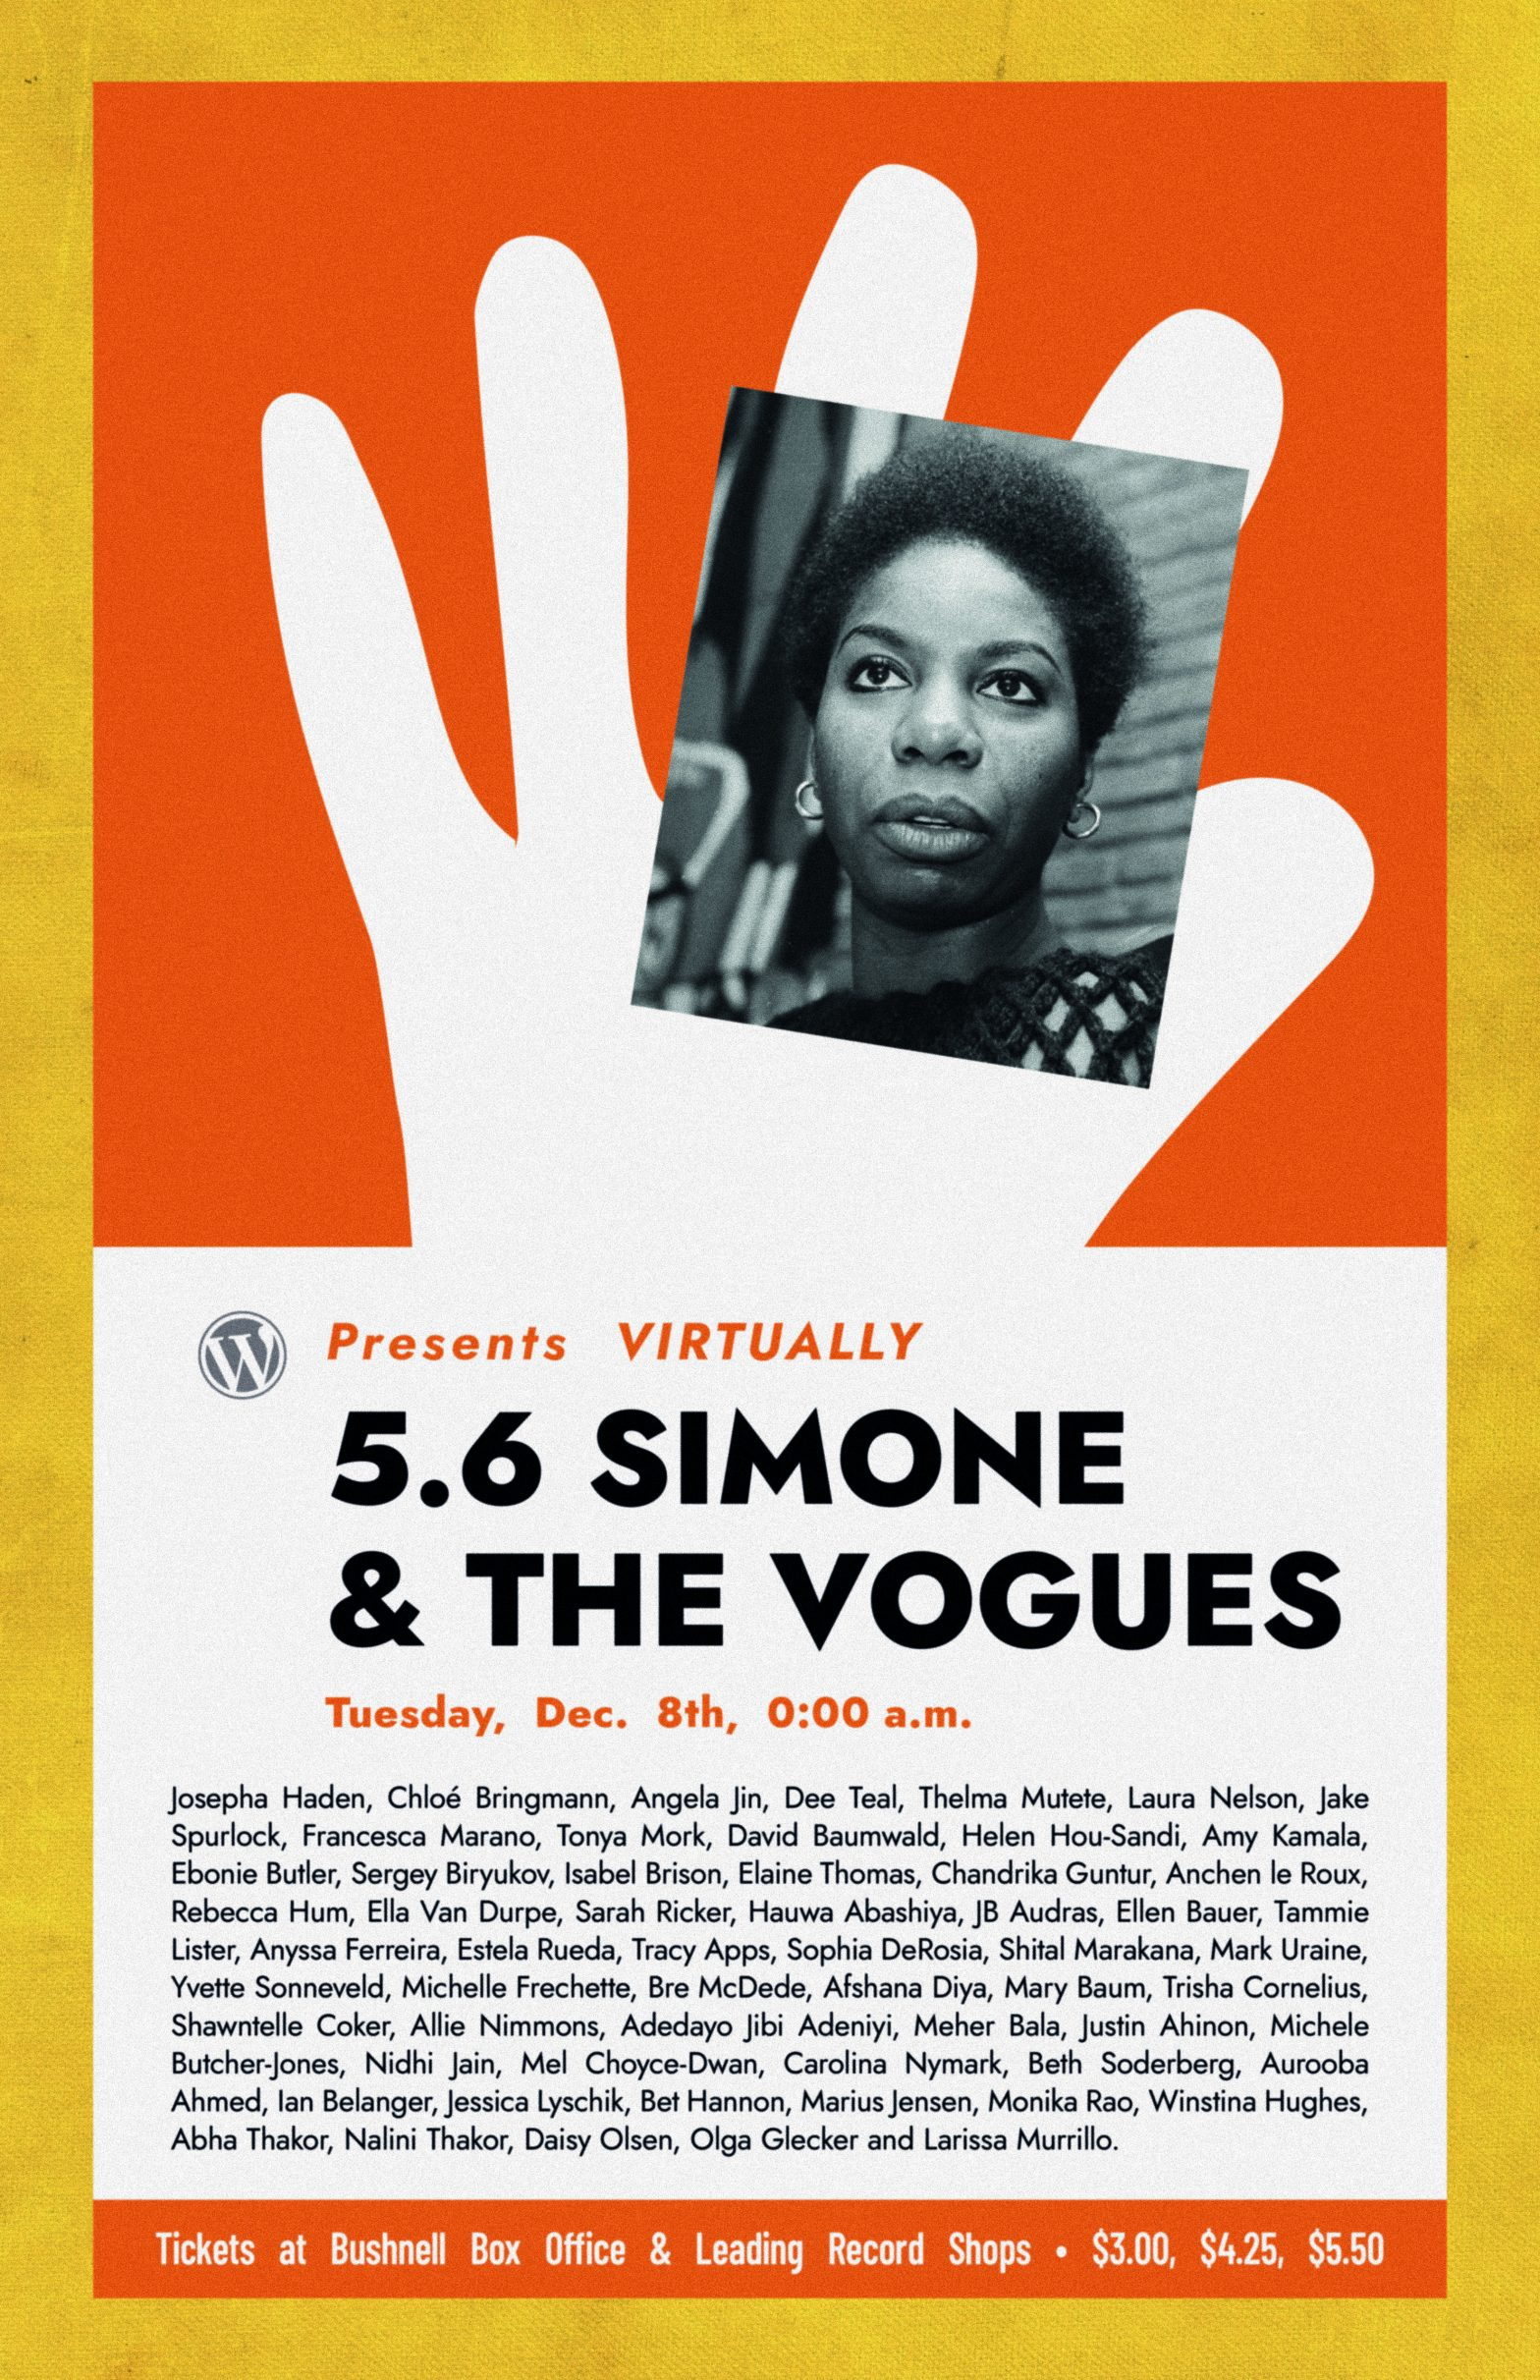 5.6 Simone & The Vogues